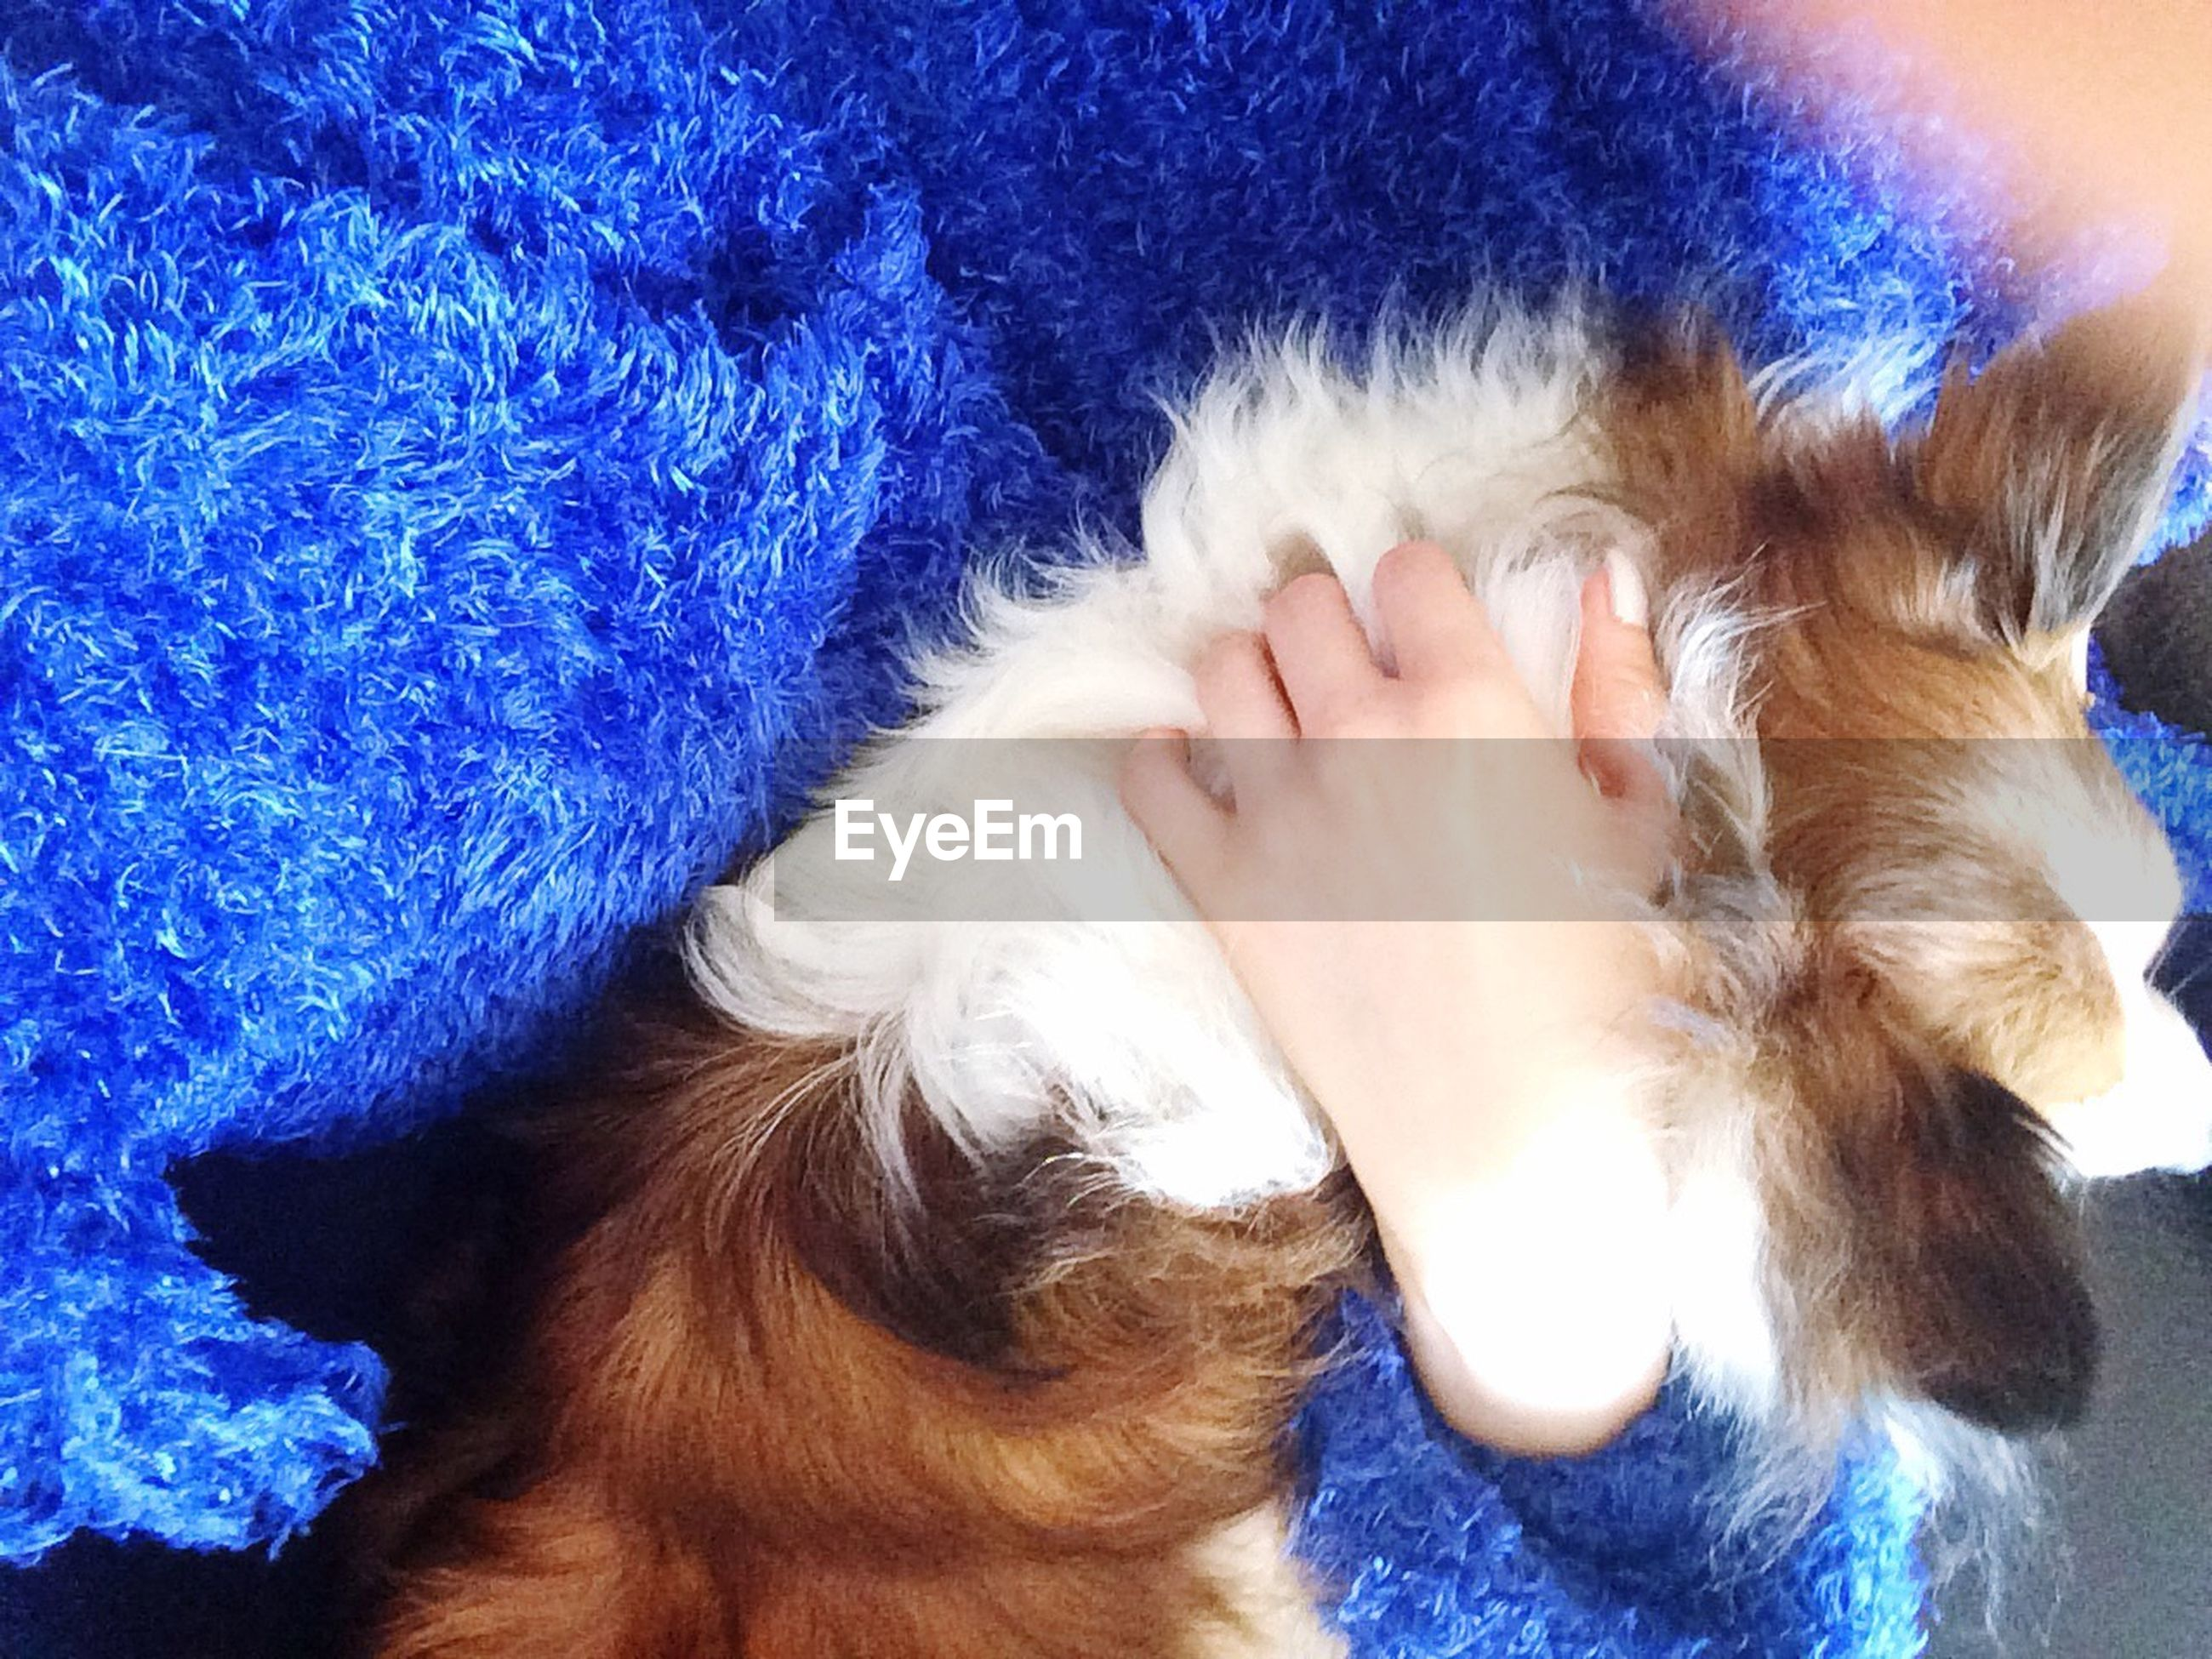 pets, domestic animals, one animal, mammal, animal themes, dog, domestic cat, cat, relaxation, indoors, lying down, part of, close-up, pet owner, resting, feline, blue